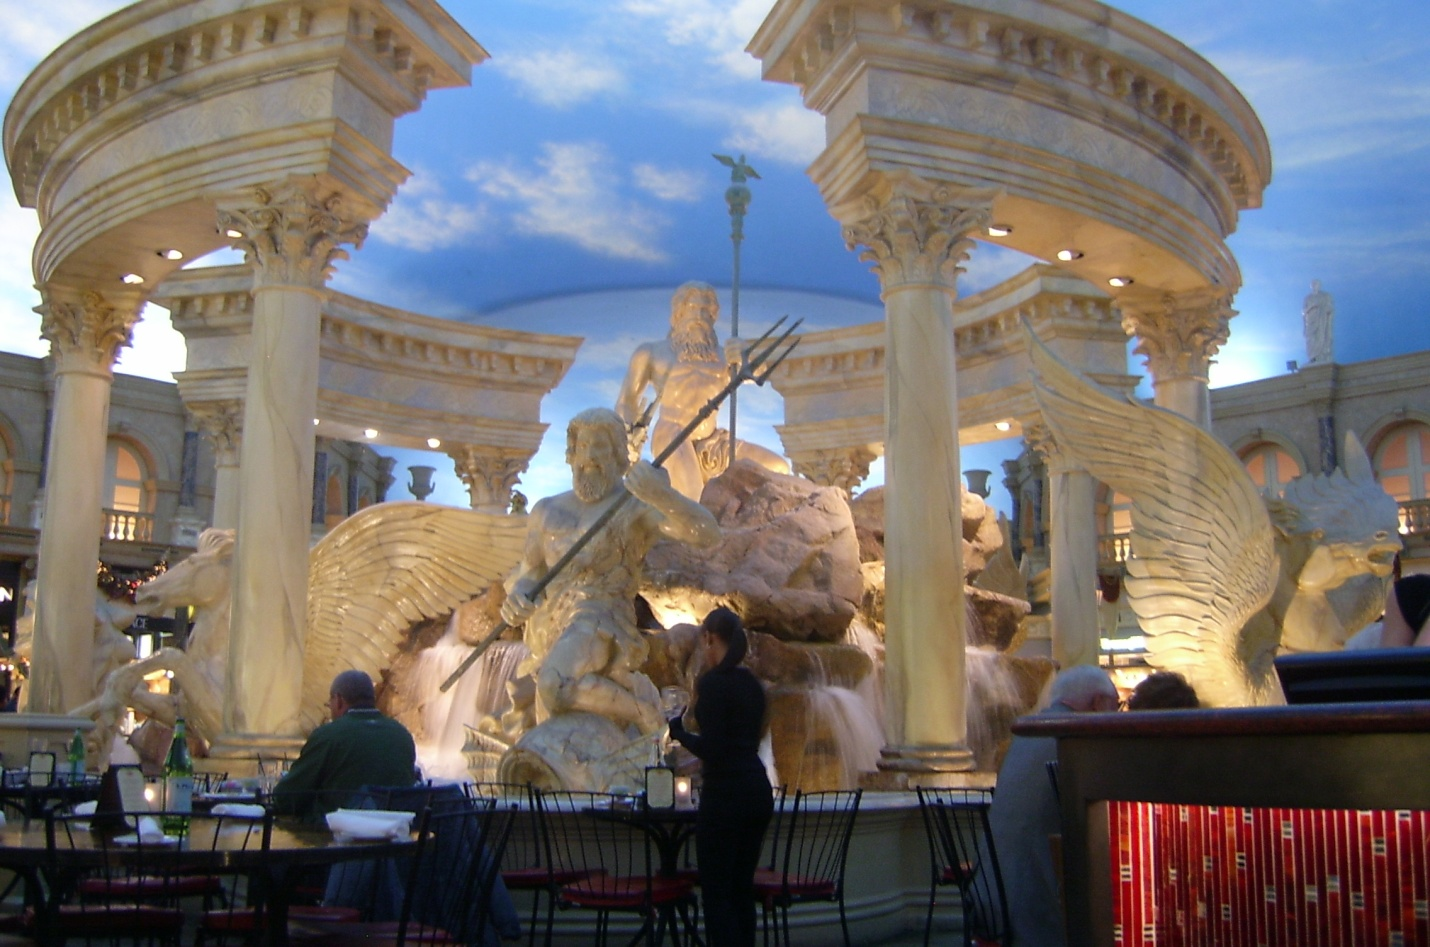 C:\Users\Russ\Desktop\Documents\Canada photos\Las Vegas Trip2007\Las Vegas\32.JPG